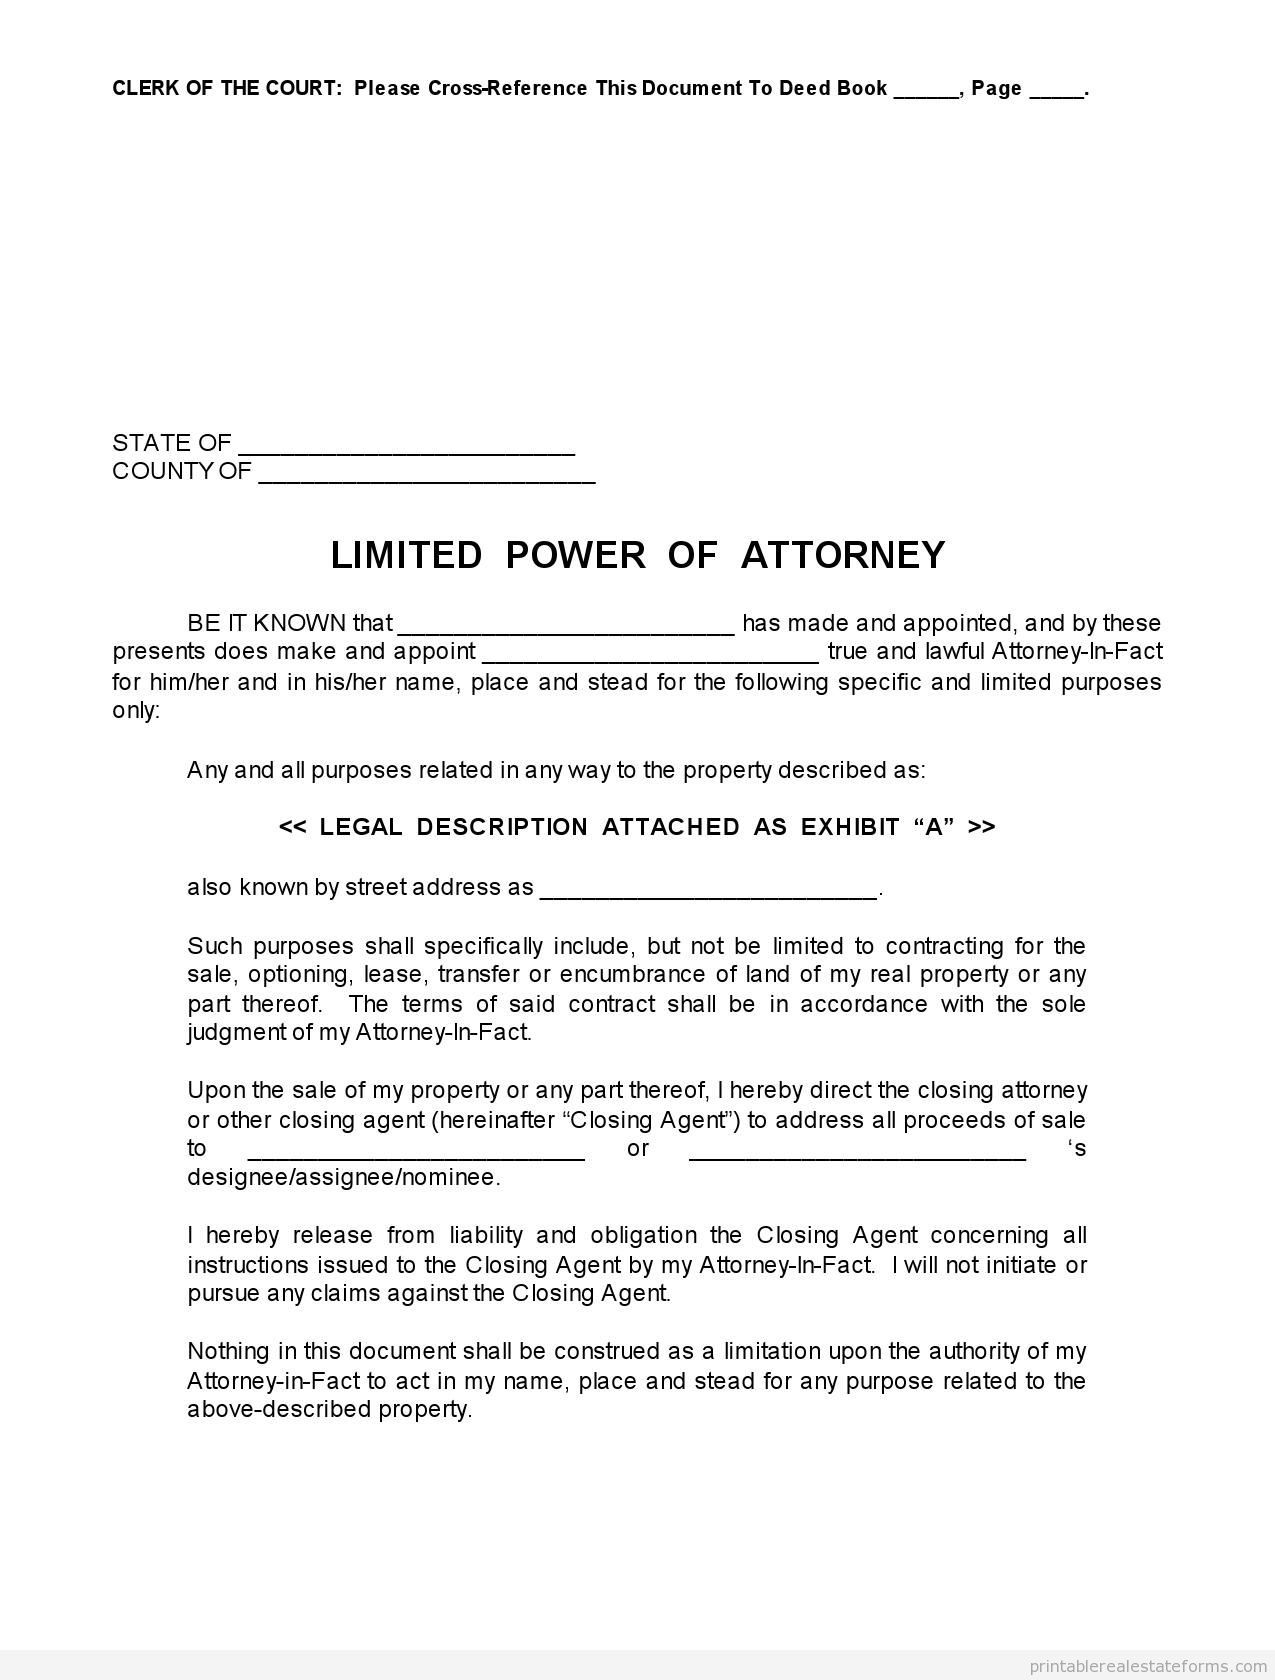 Free Printable Limited Power Of Attorney Forms Sample Power Of Attorney Form Power Of Attorney Attorneys